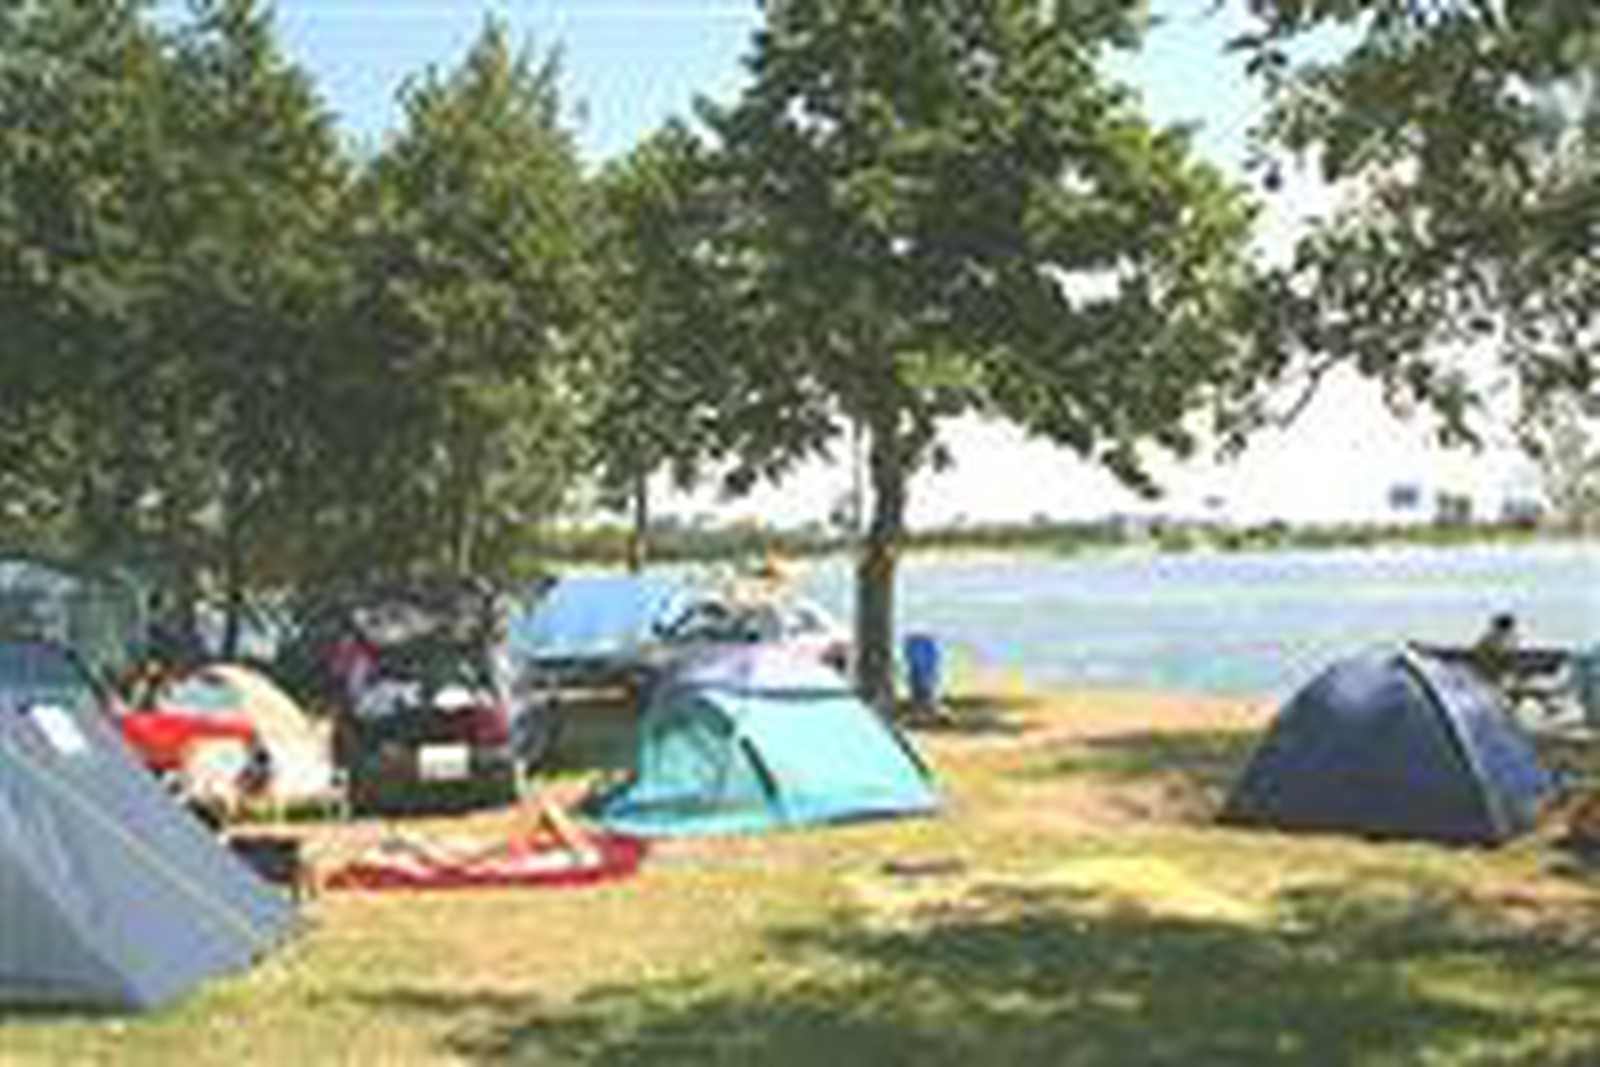 https://cdn.prod.v2.camping.info/media/campsites/areal-zdravia-zlate-piesky/XTfupBthVUCZ.jpg